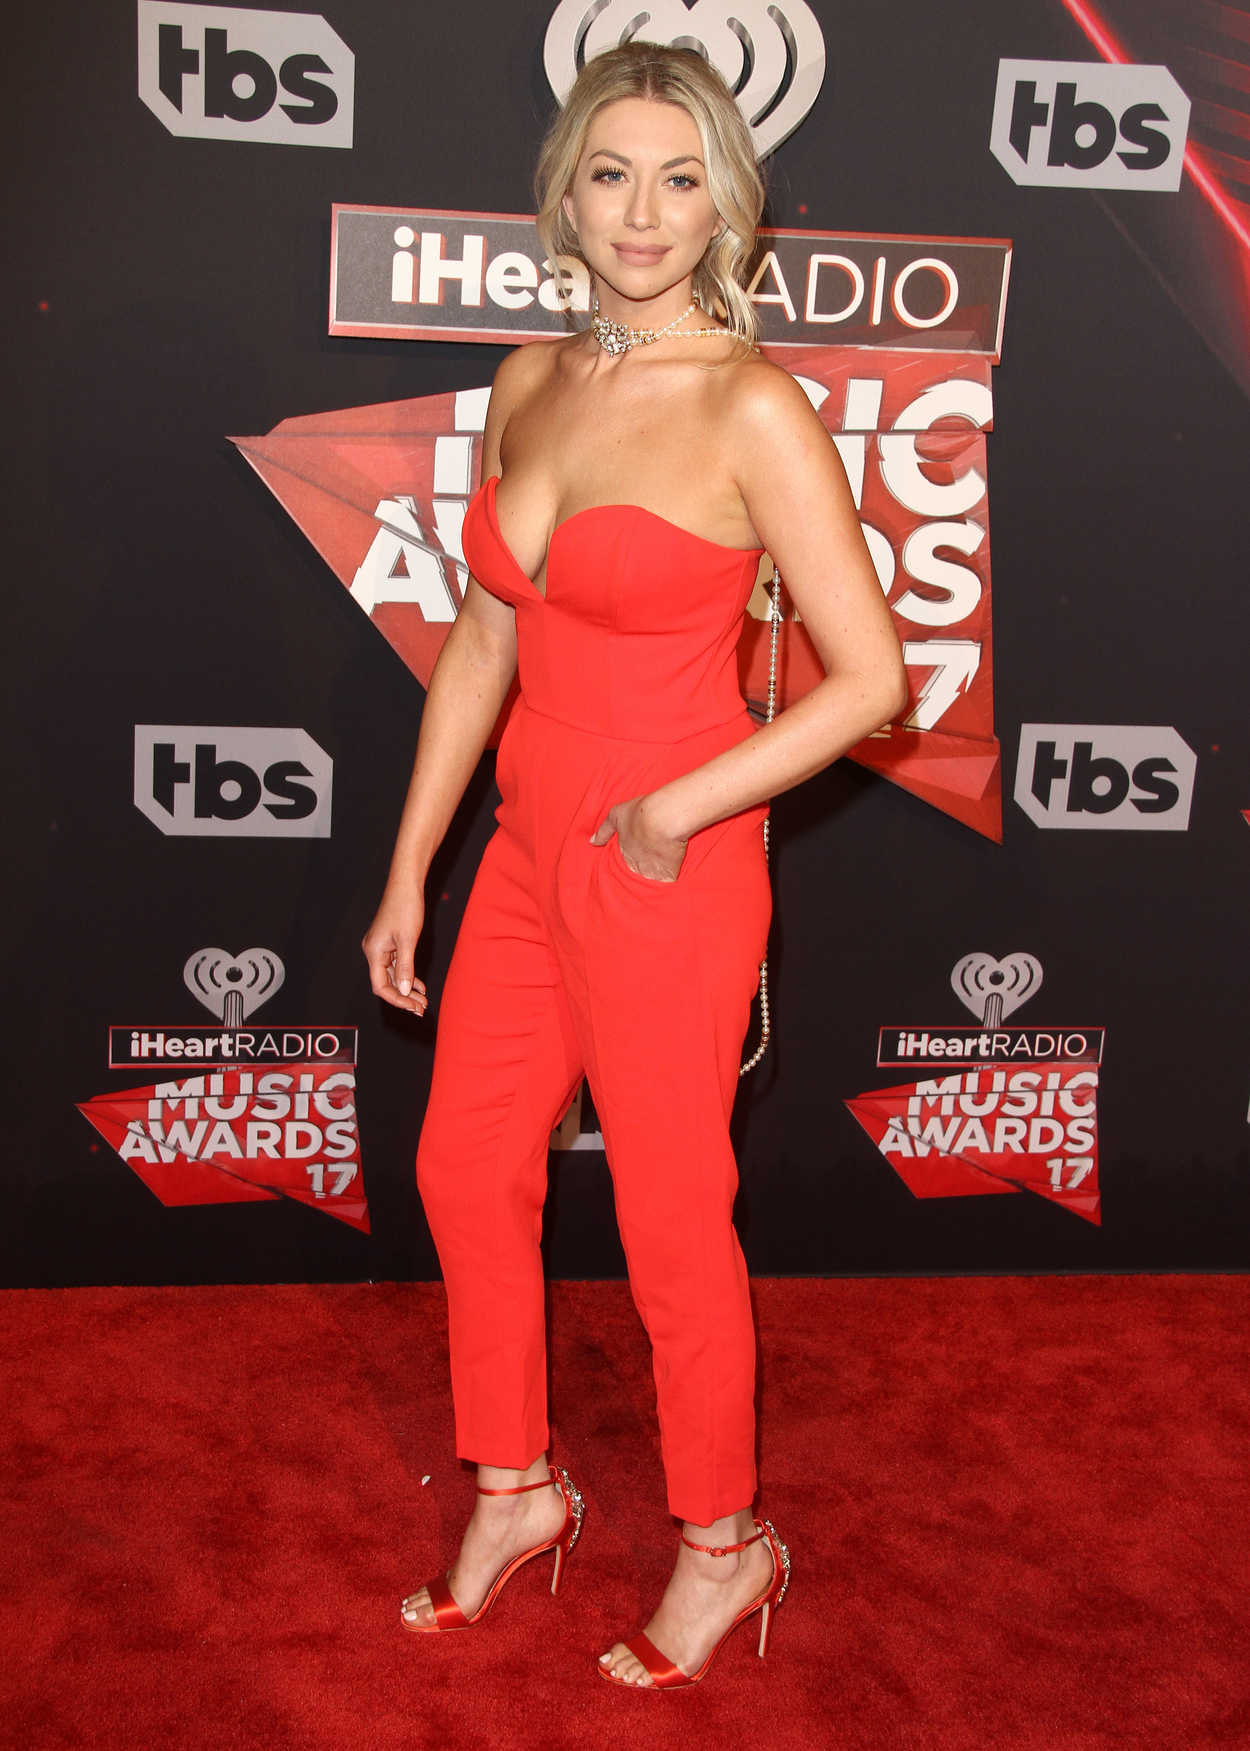 Stassi Schroeder at the iHeartRadio Music Awards in Los Angeles 03/05/2017